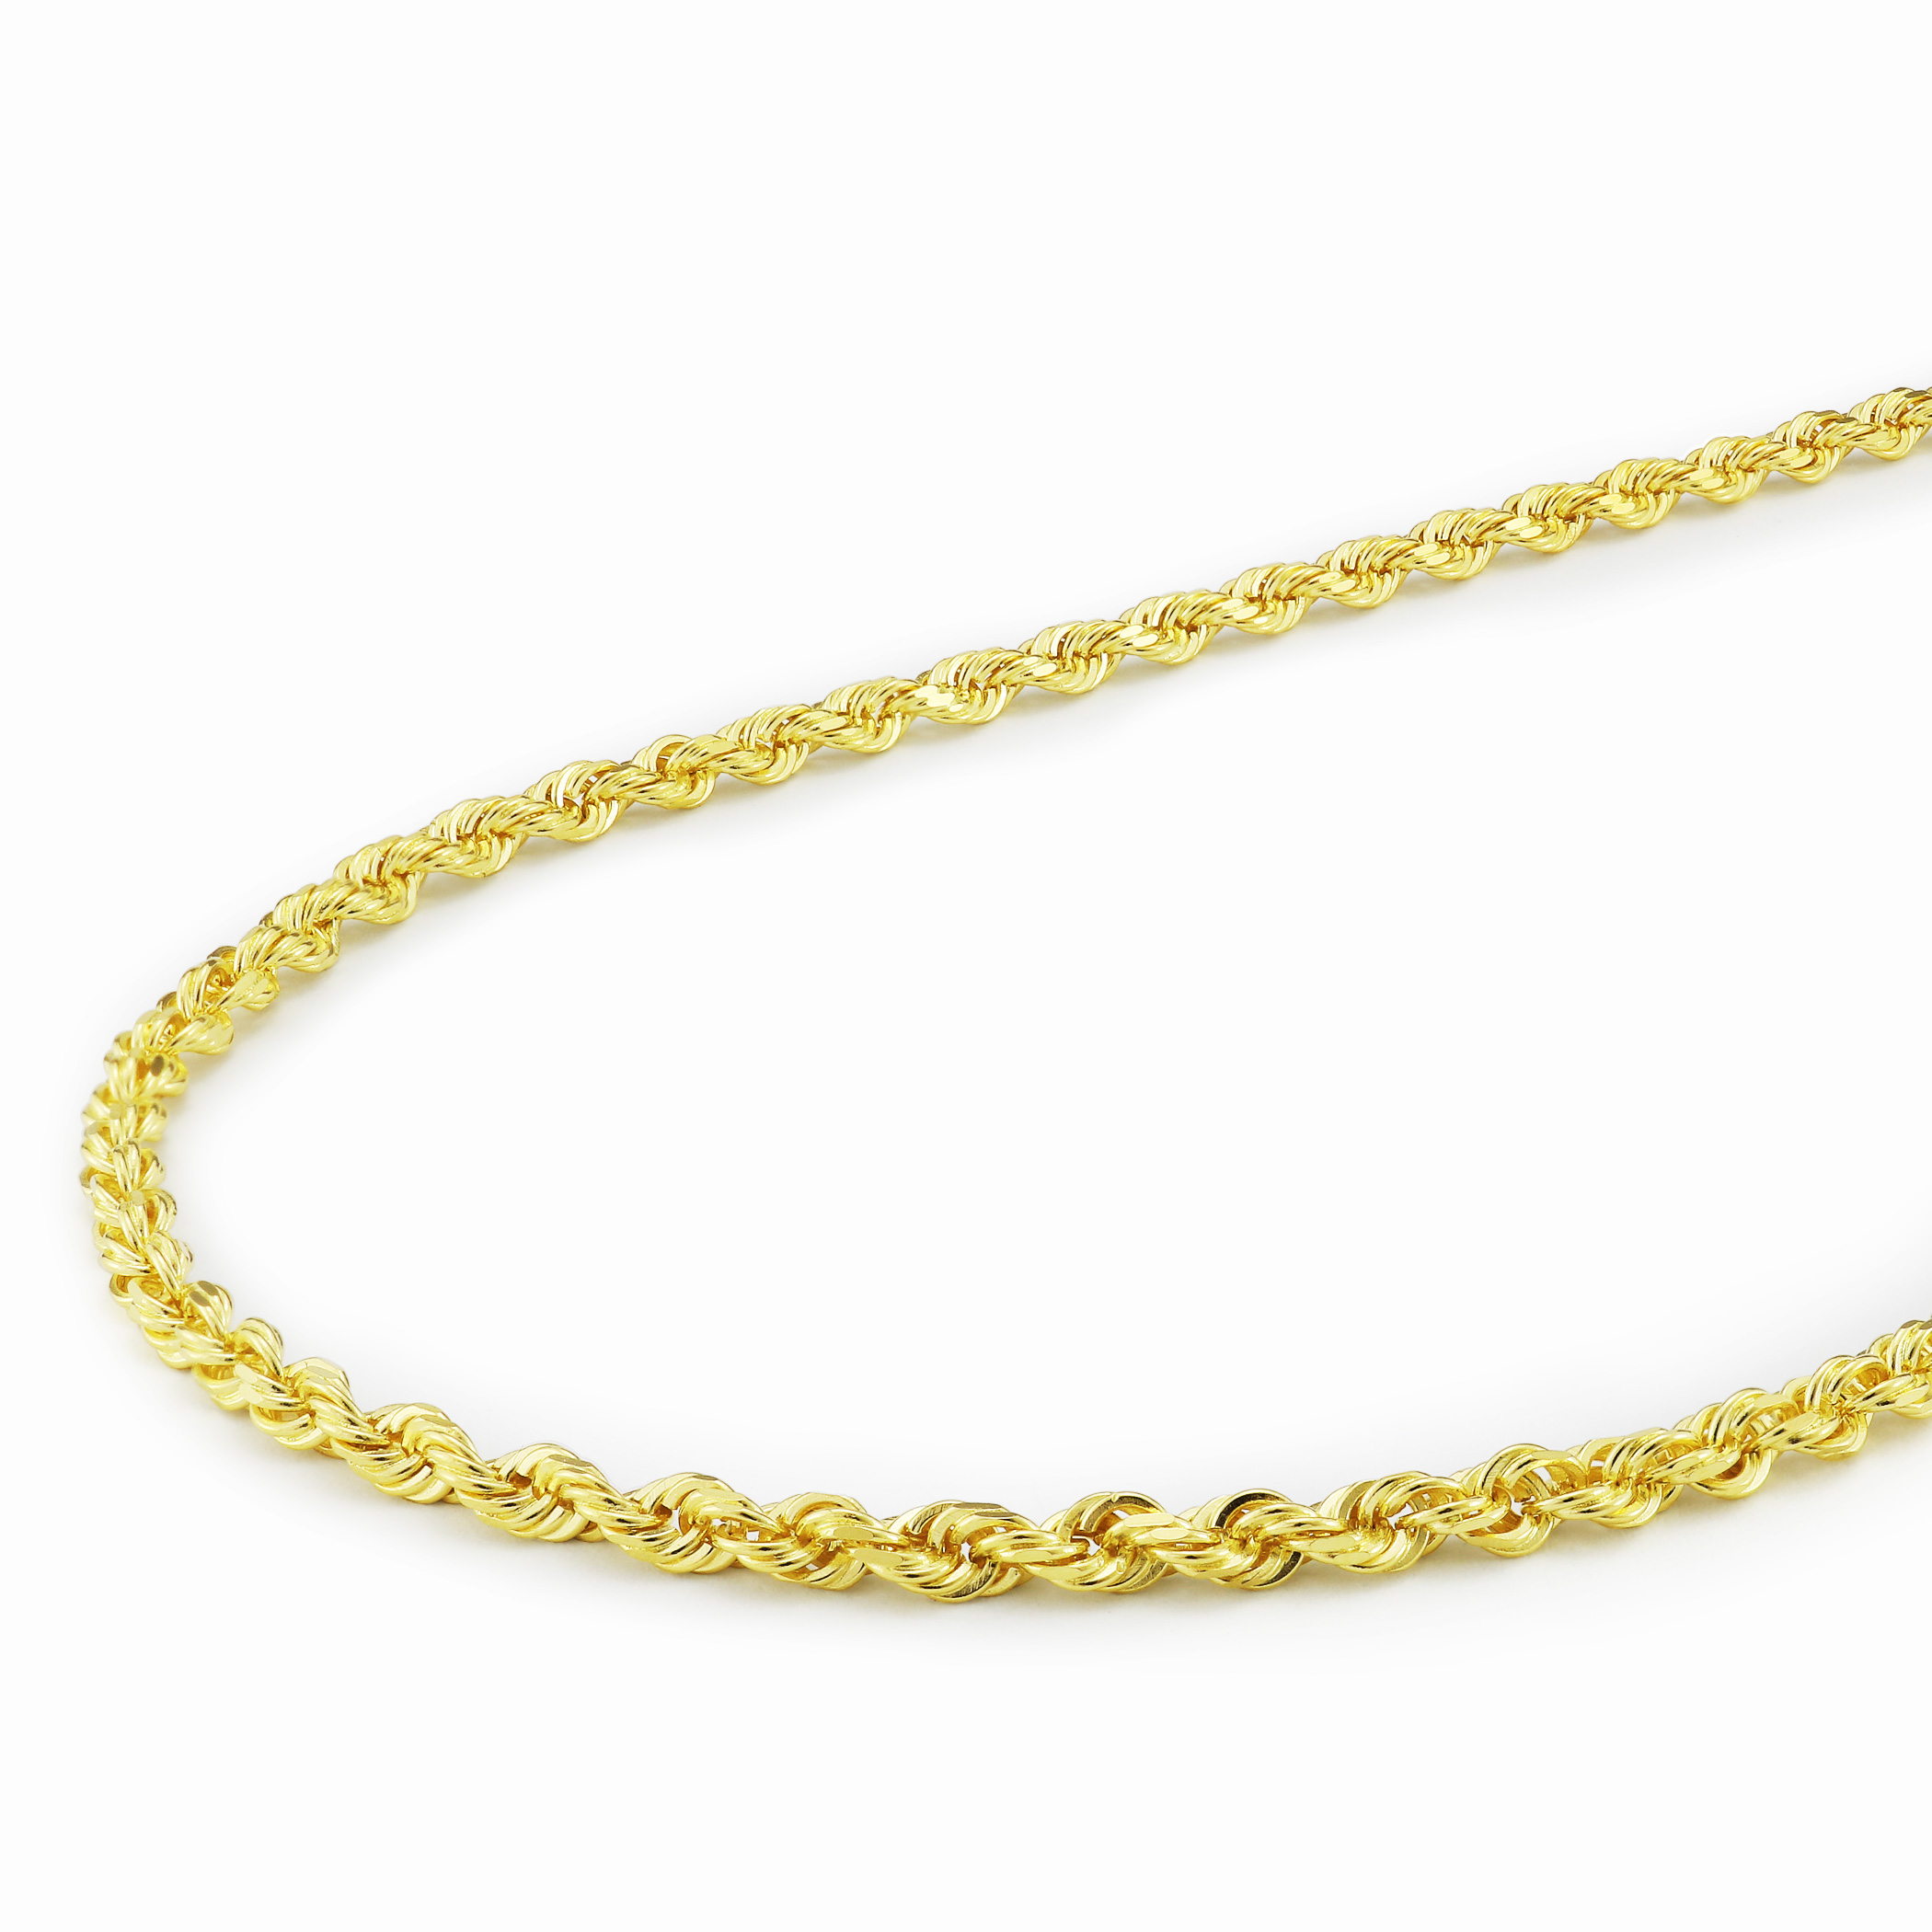 Solid-14K-Yellow-Gold-2-5mm-Mens-Women-Diamond-Cut-Rope-Chain-Necklace-16-034-30-034 thumbnail 24